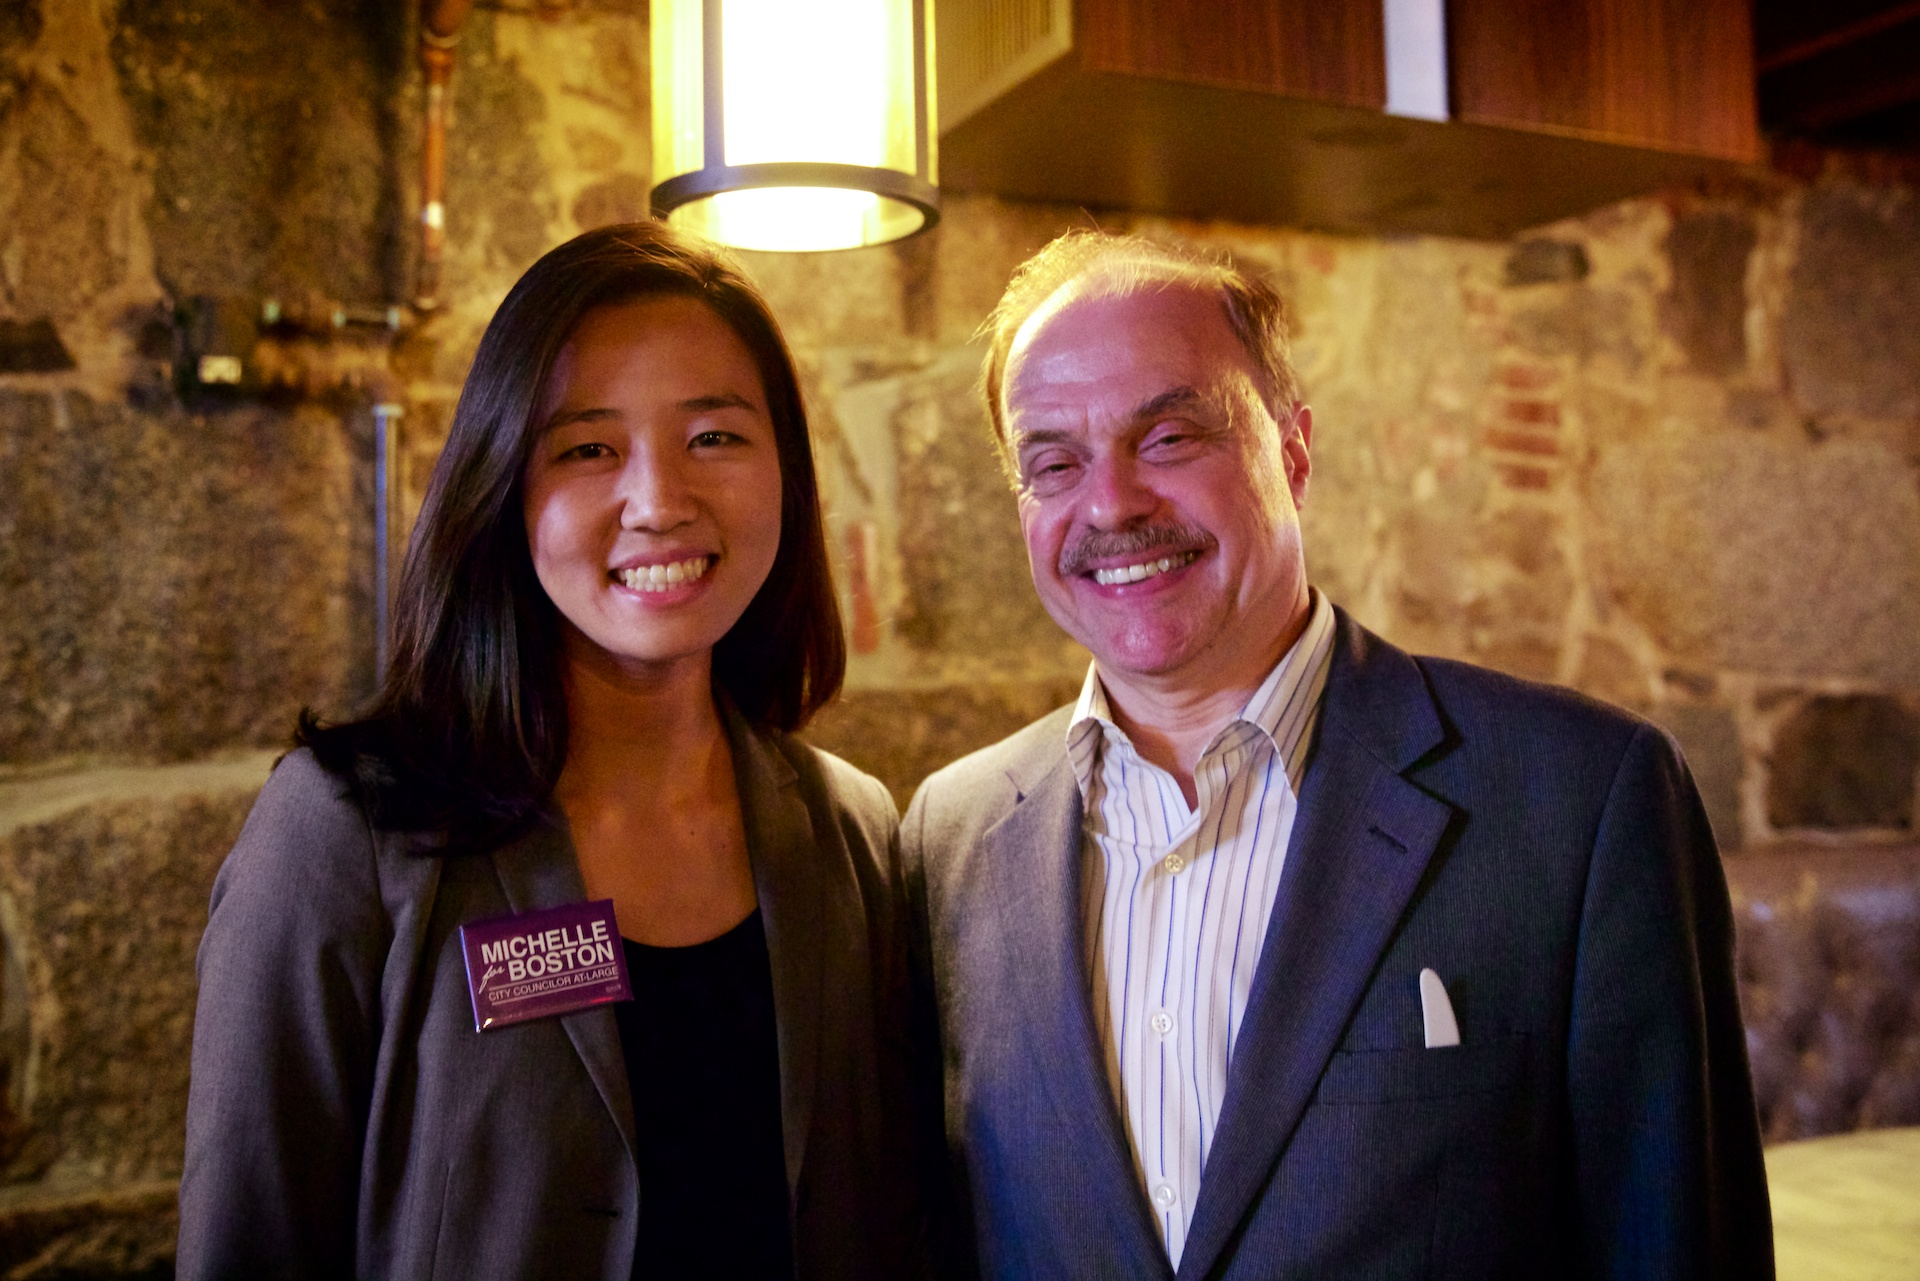 City Councilor At-Large Candidate Michelle Wu with Jim Salini at the ...